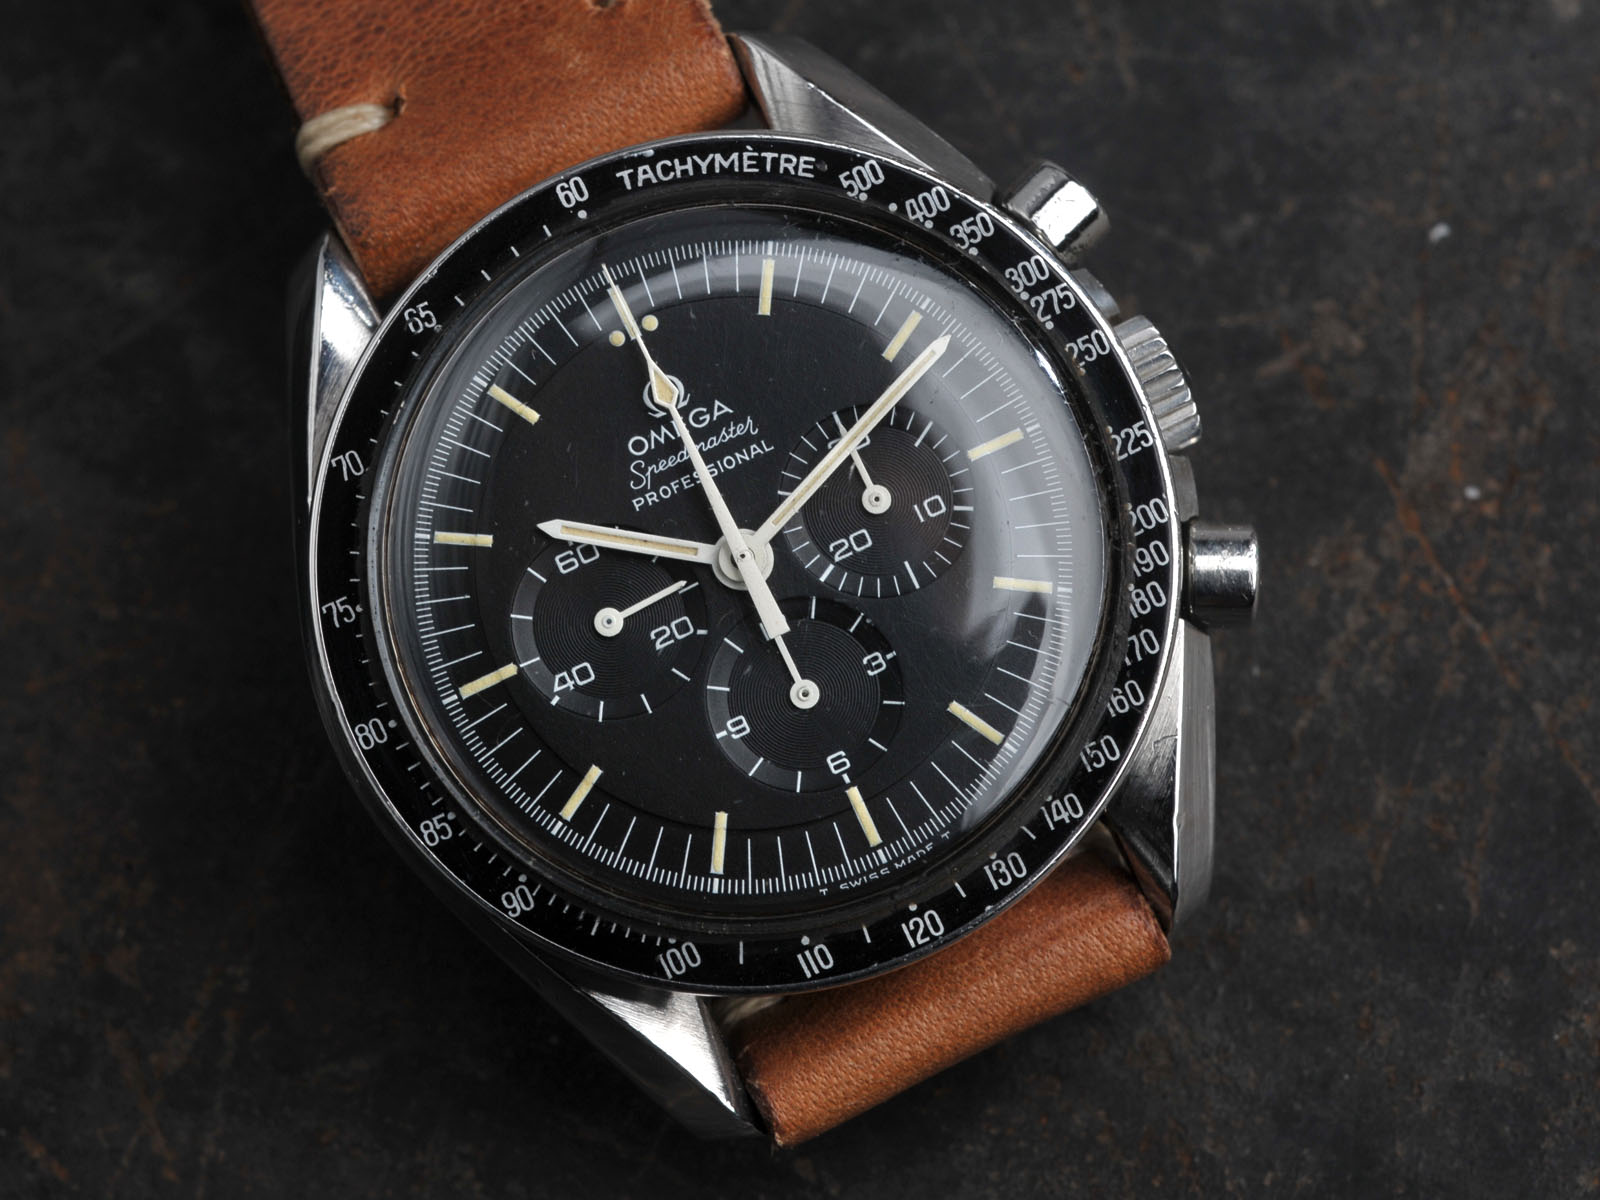 Omega speedmaster 1969 pre moon amazing patina rolex watch strap hand made for Omega watch speedmaster